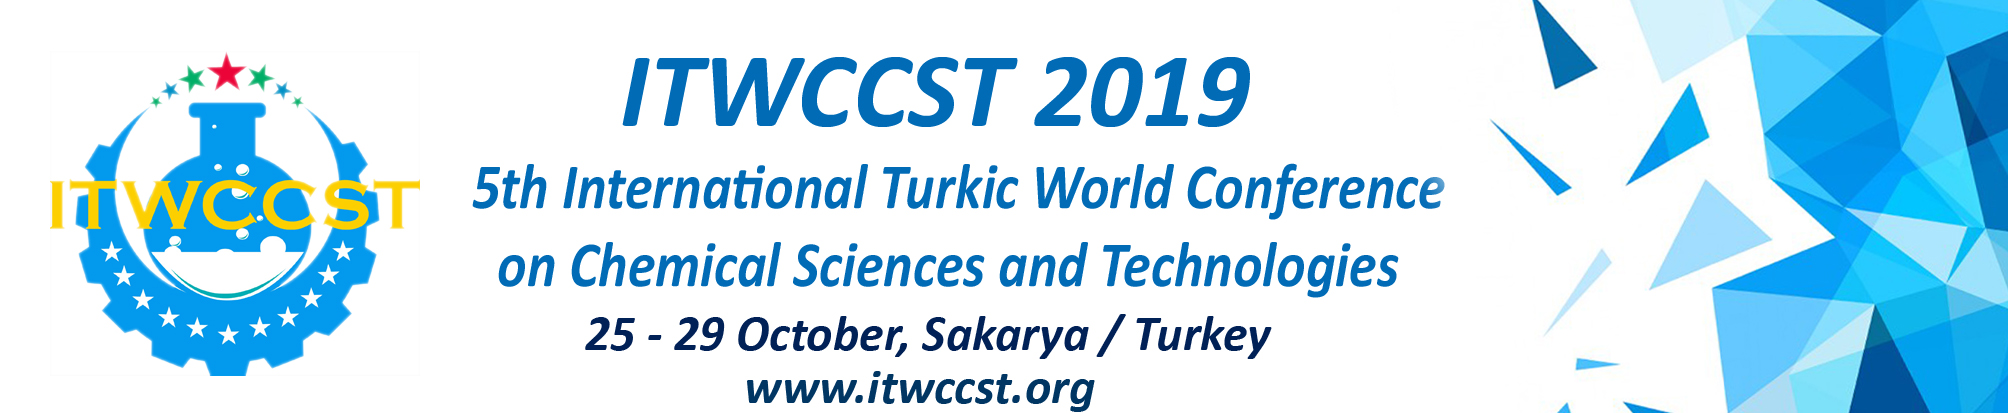 ITWCCST 2019